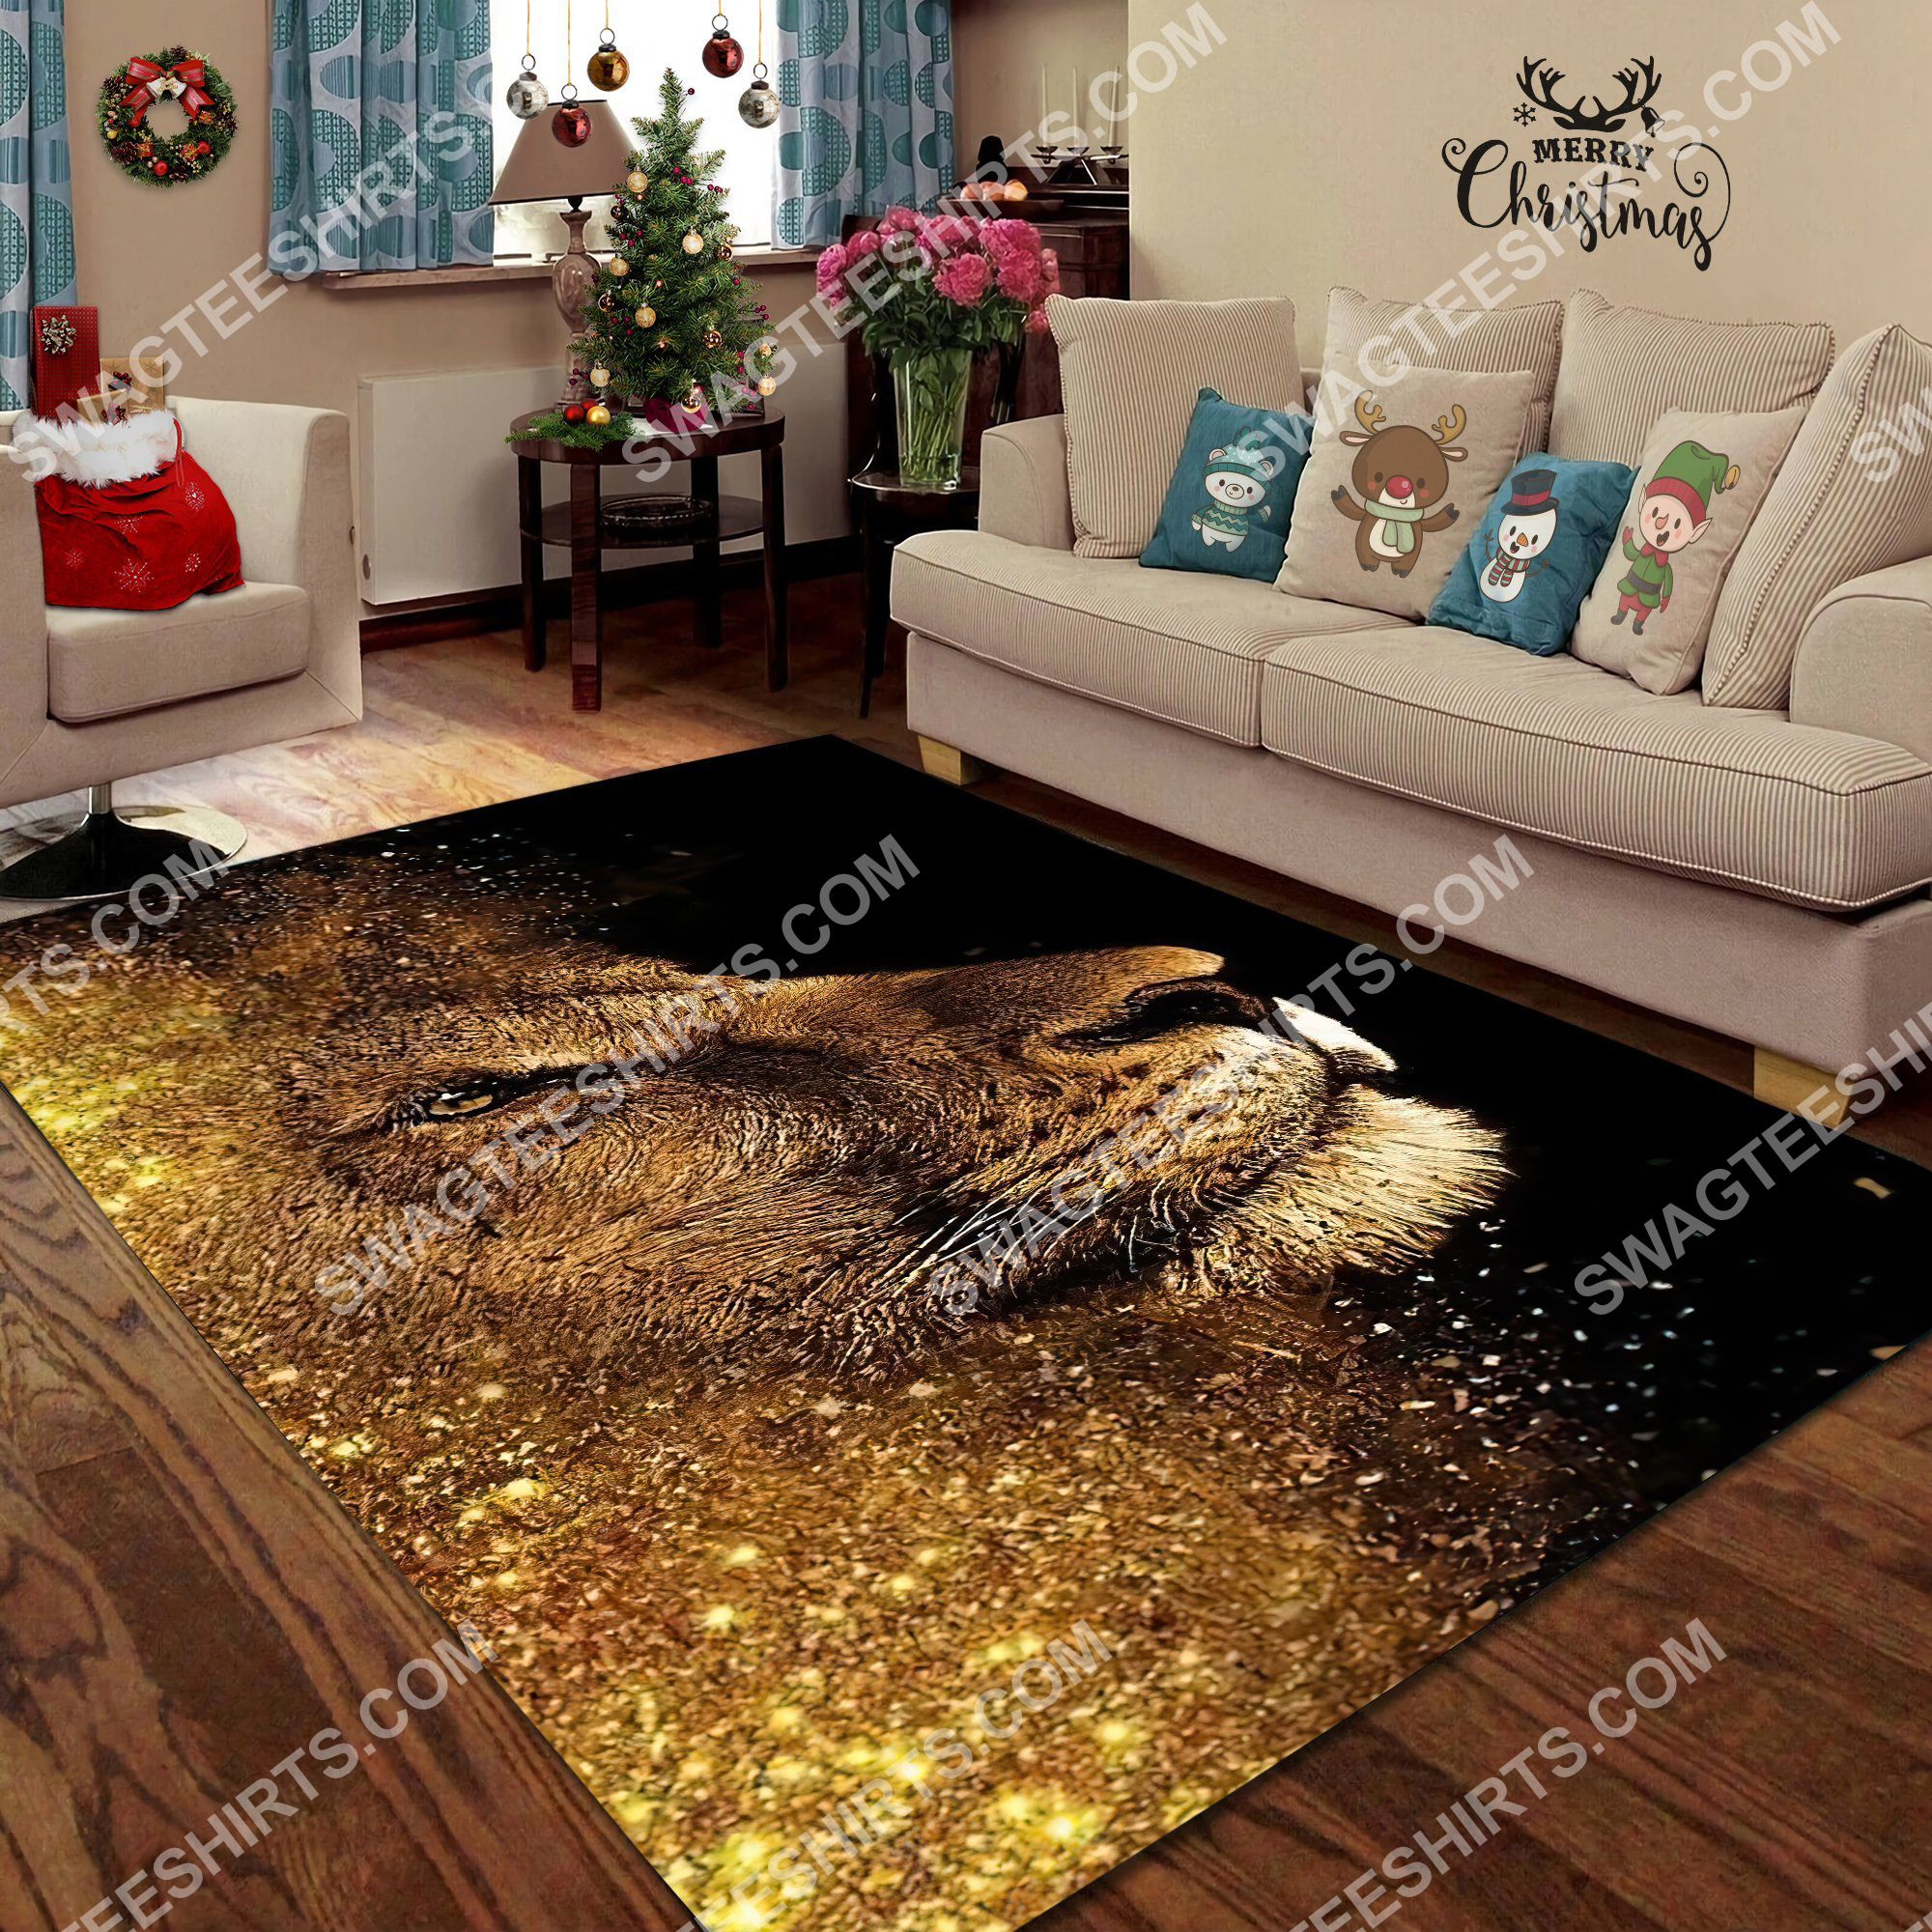 the golden lion all over printed rug 5(1)